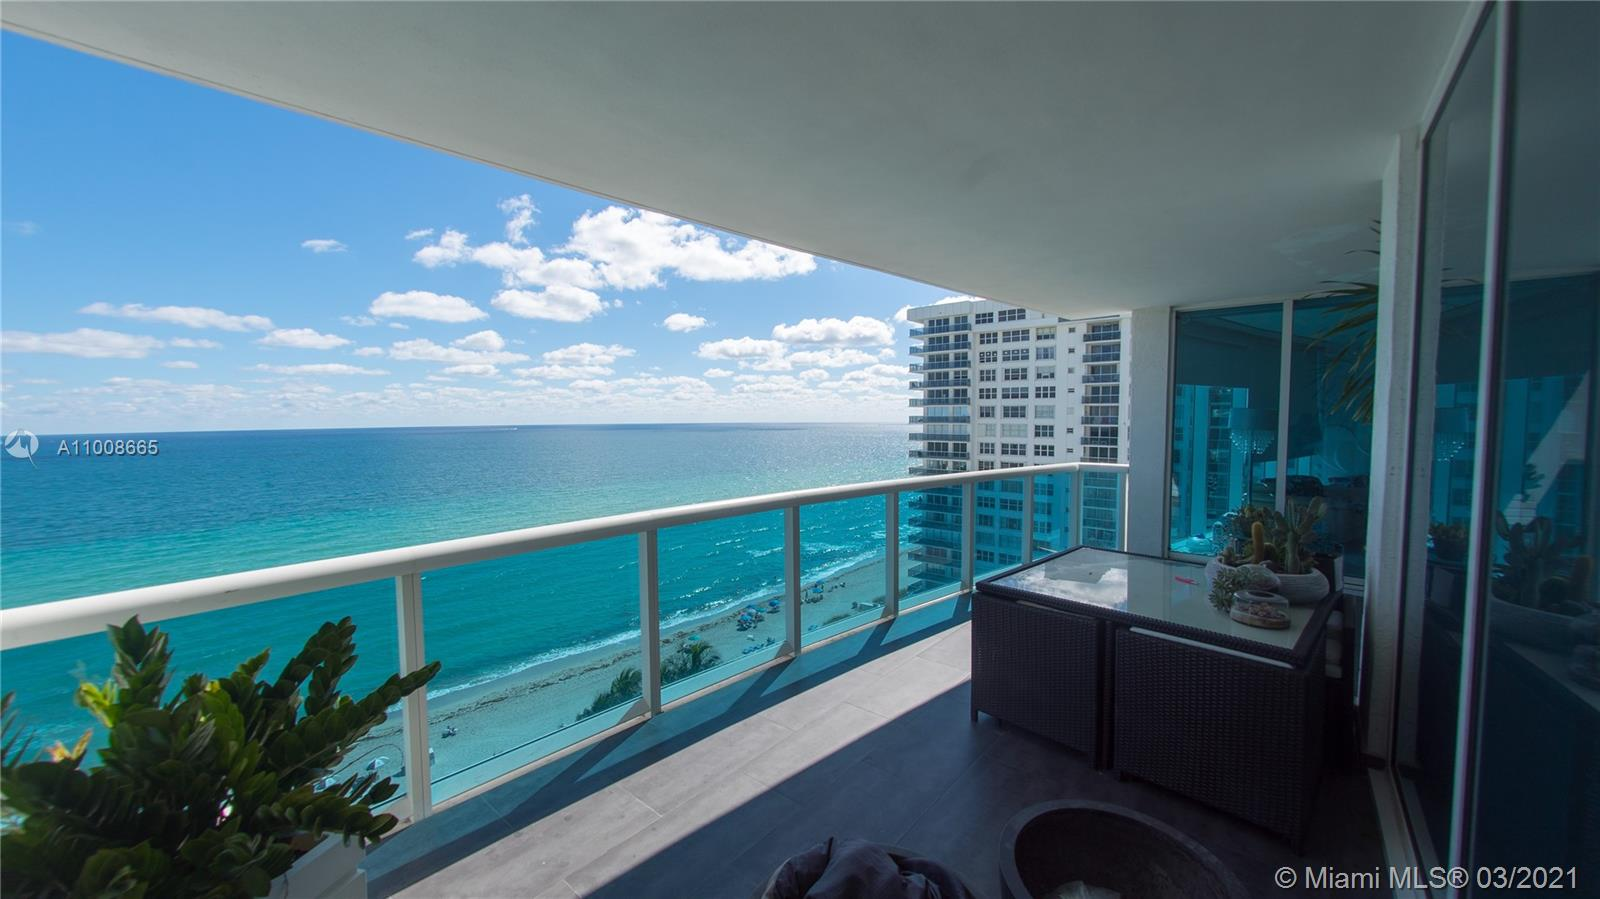 Oceanfront living at luxurious boutique building. Largest 3 bed floor plan with 3.5 baths. Enjoy flow through floor plan with panoramic oceanfront, intercostal and city views. Private elevator will lead to gorgeous marble foyer. Wood cabinetry kitchen with top of the line appliances, and custom wood closets throughout. Resort style amenities include; concierge, breakfast cafe, cigar lounge, theater, fitness and spa center, tennis court, restaurant, and beach services.